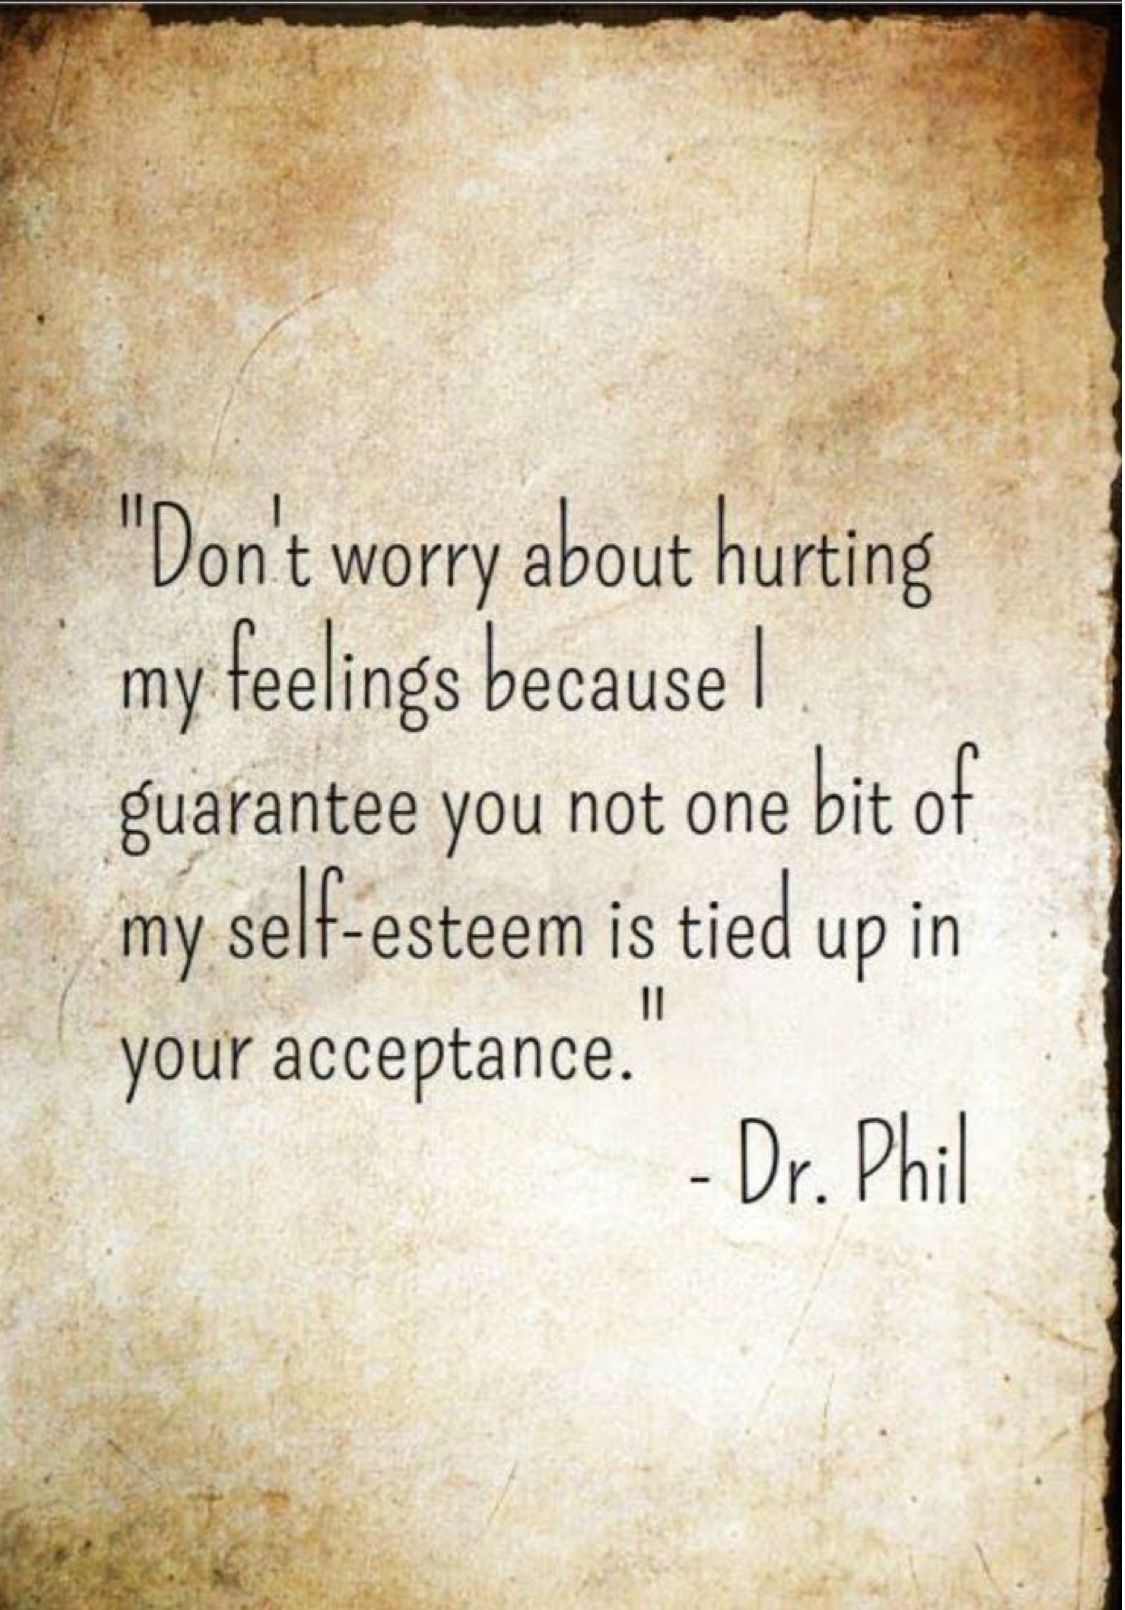 Pin by Michelle on Quotes & Inspiration | Love struggle ...